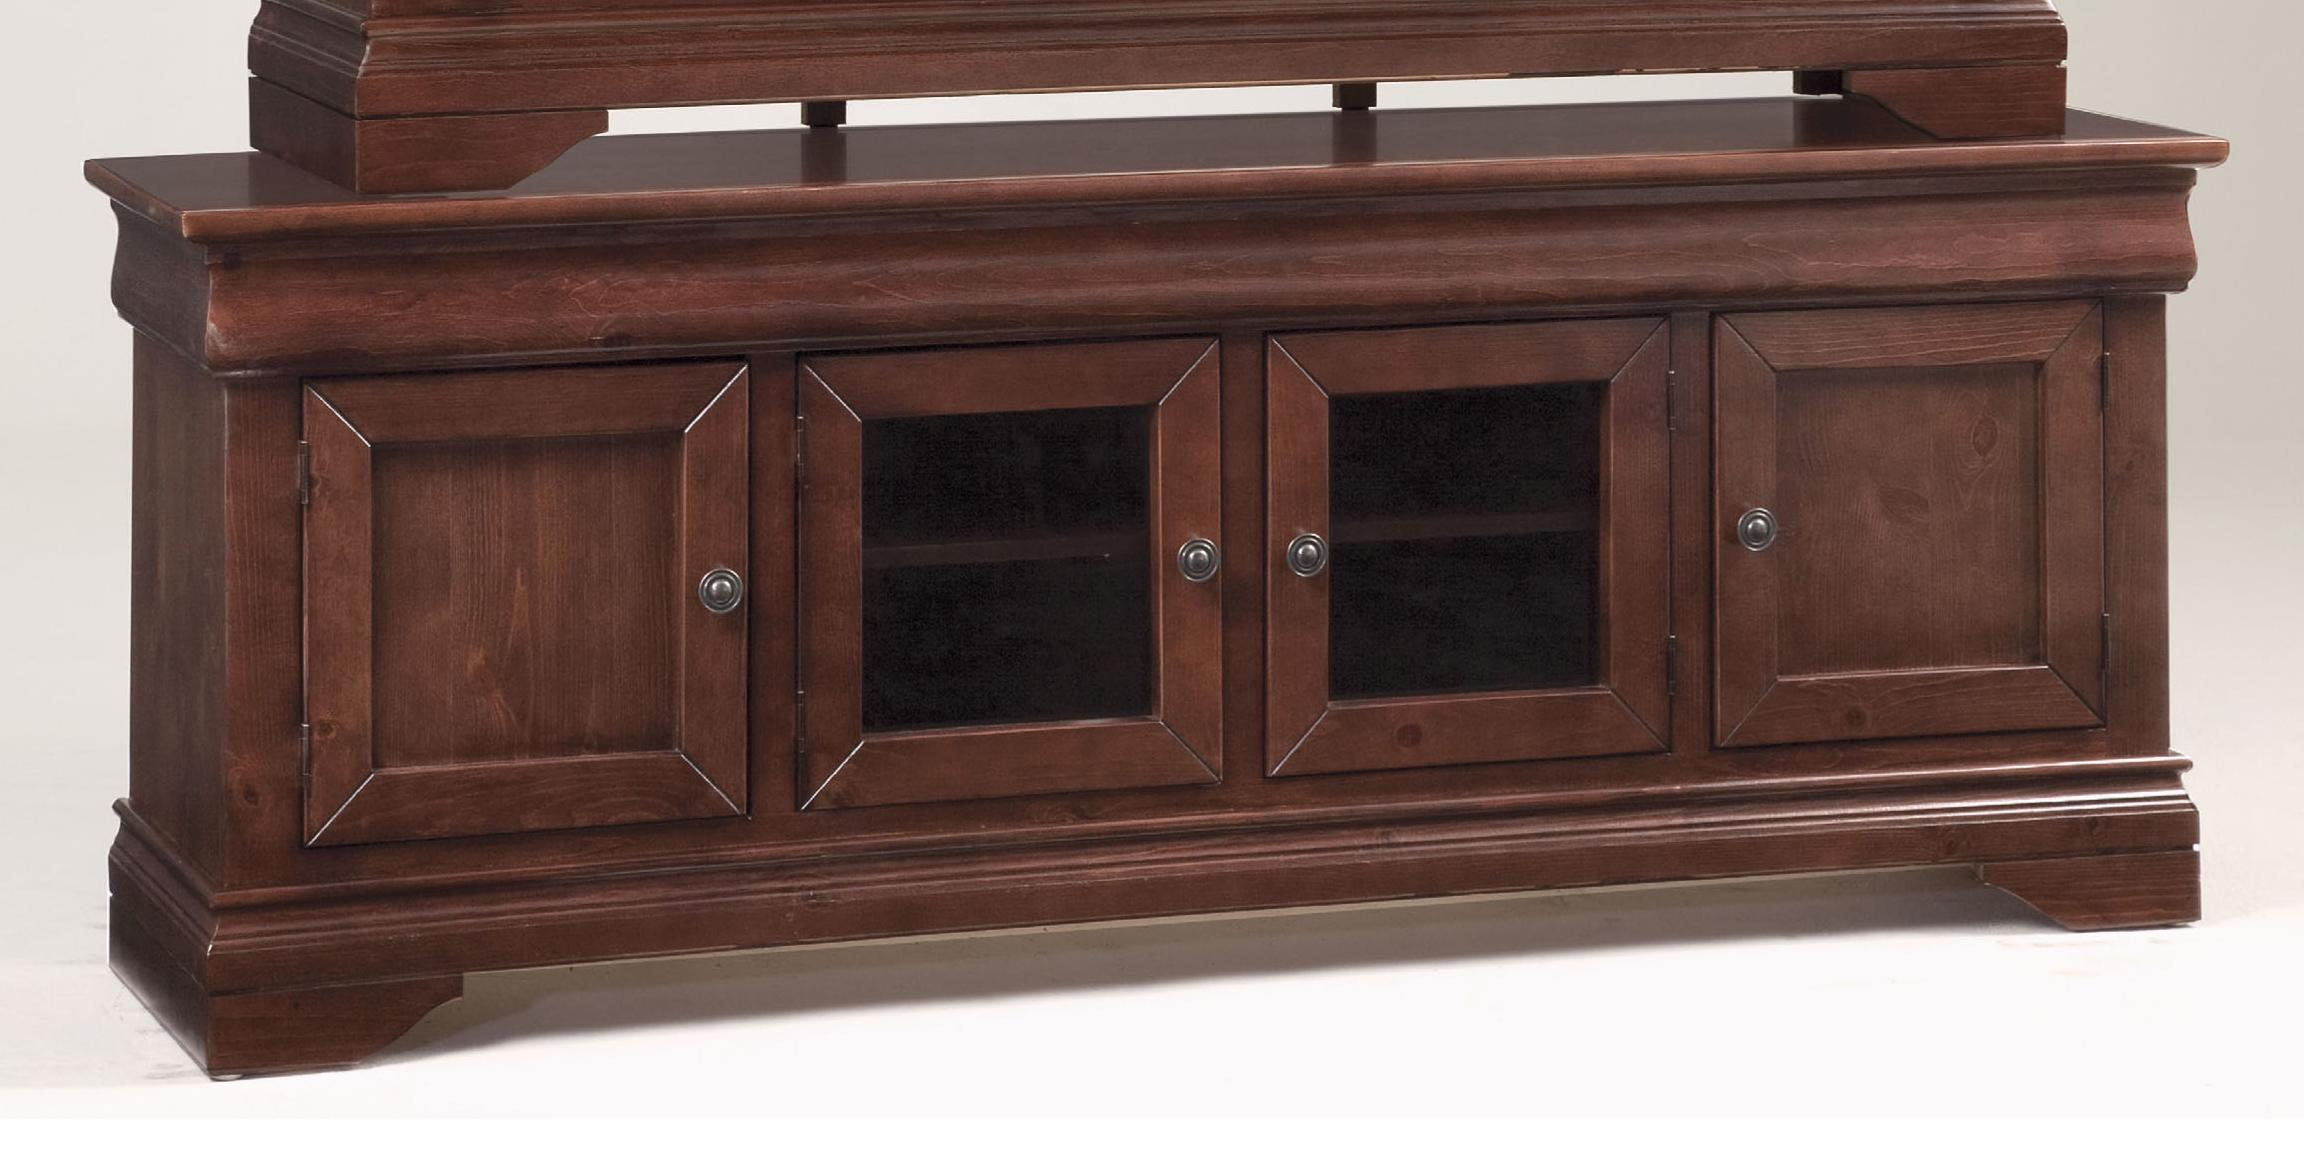 "Progressive Furniture Coventry 74"" Console - Item Number: P712-79"